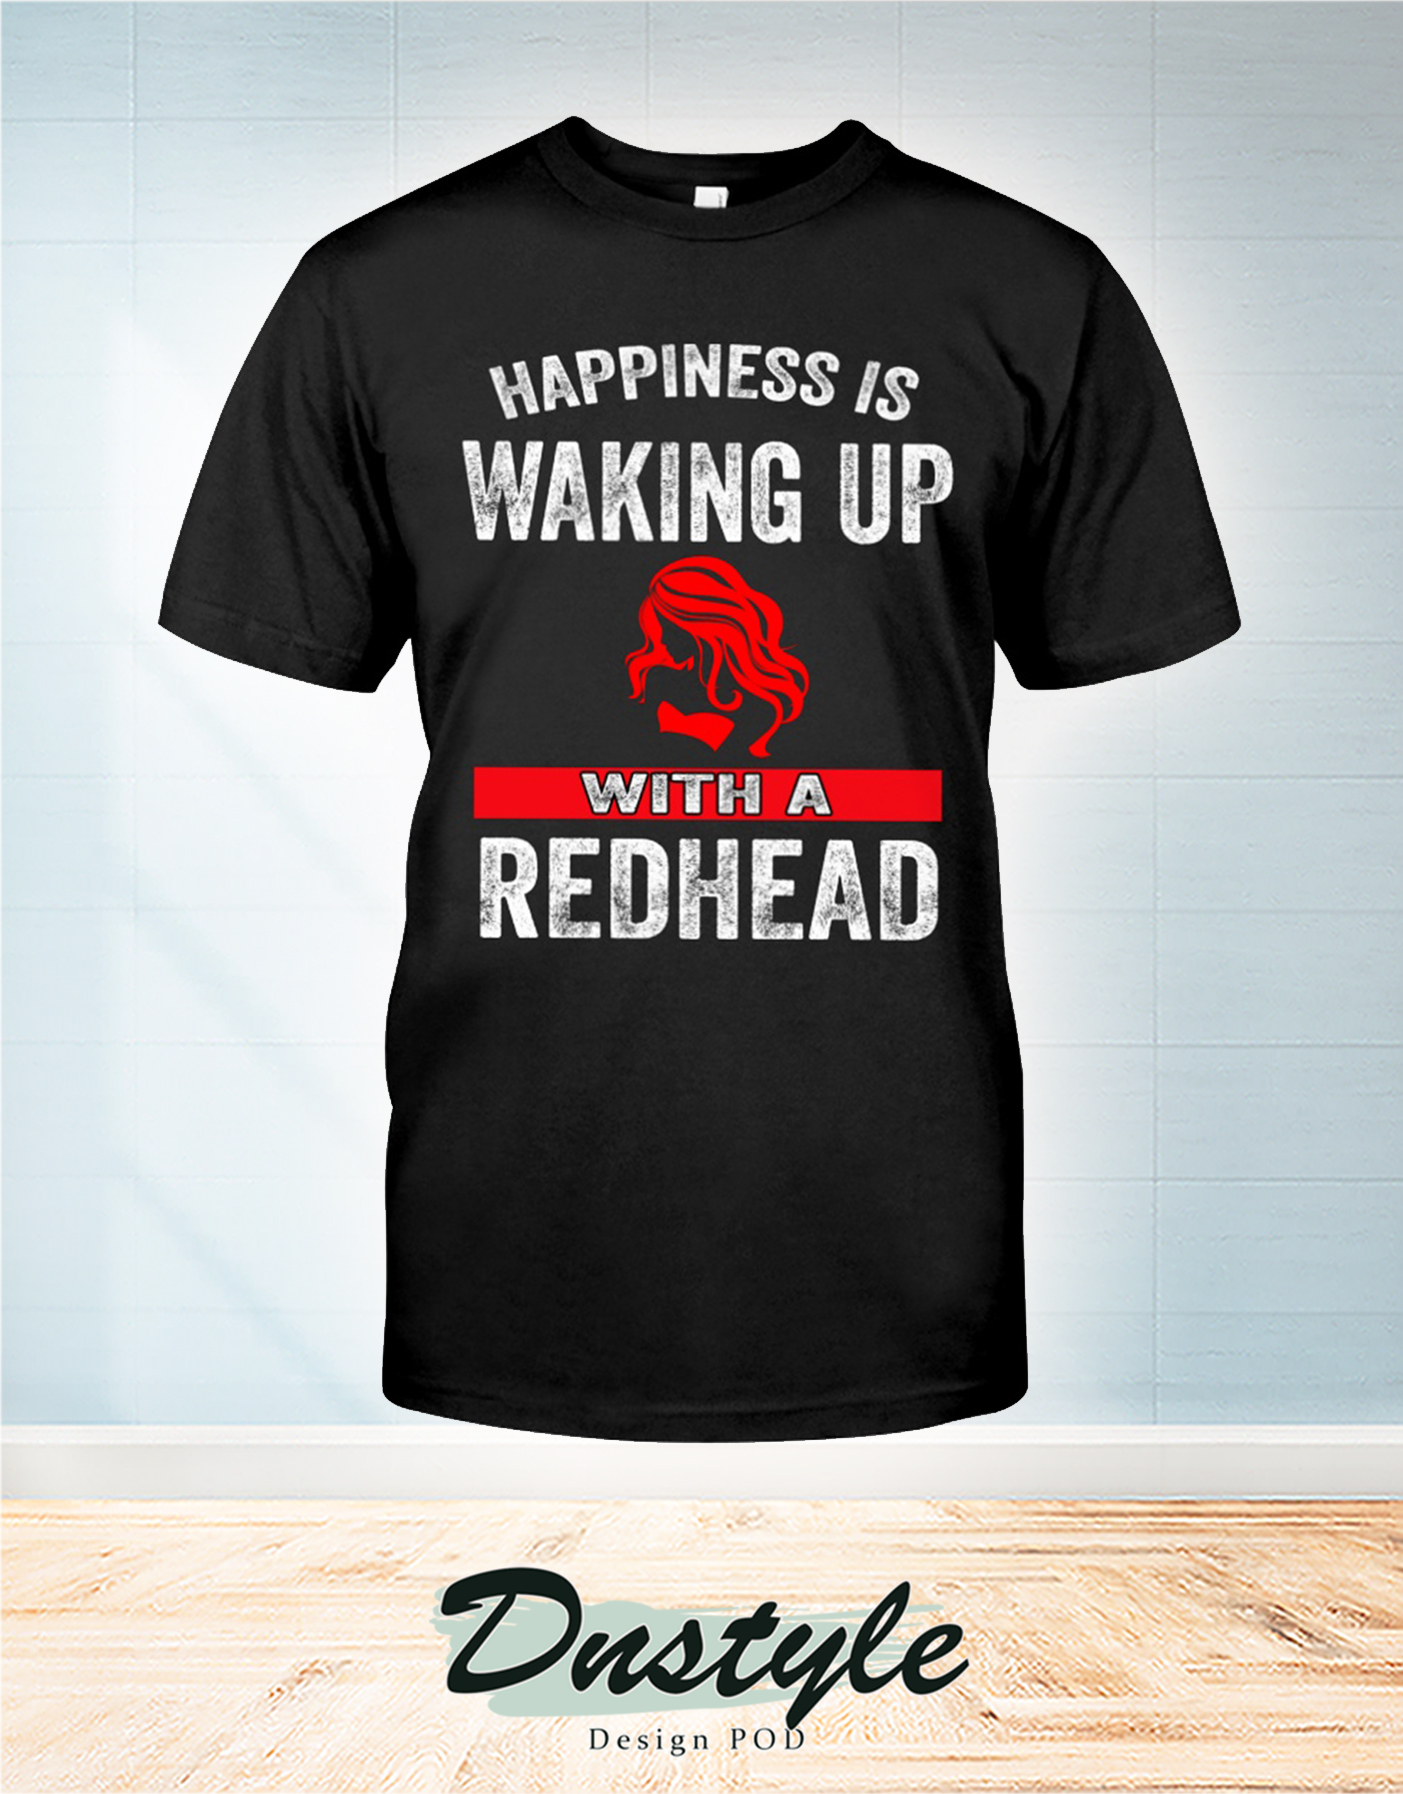 Happiness is waking up with a redhead t-shirt